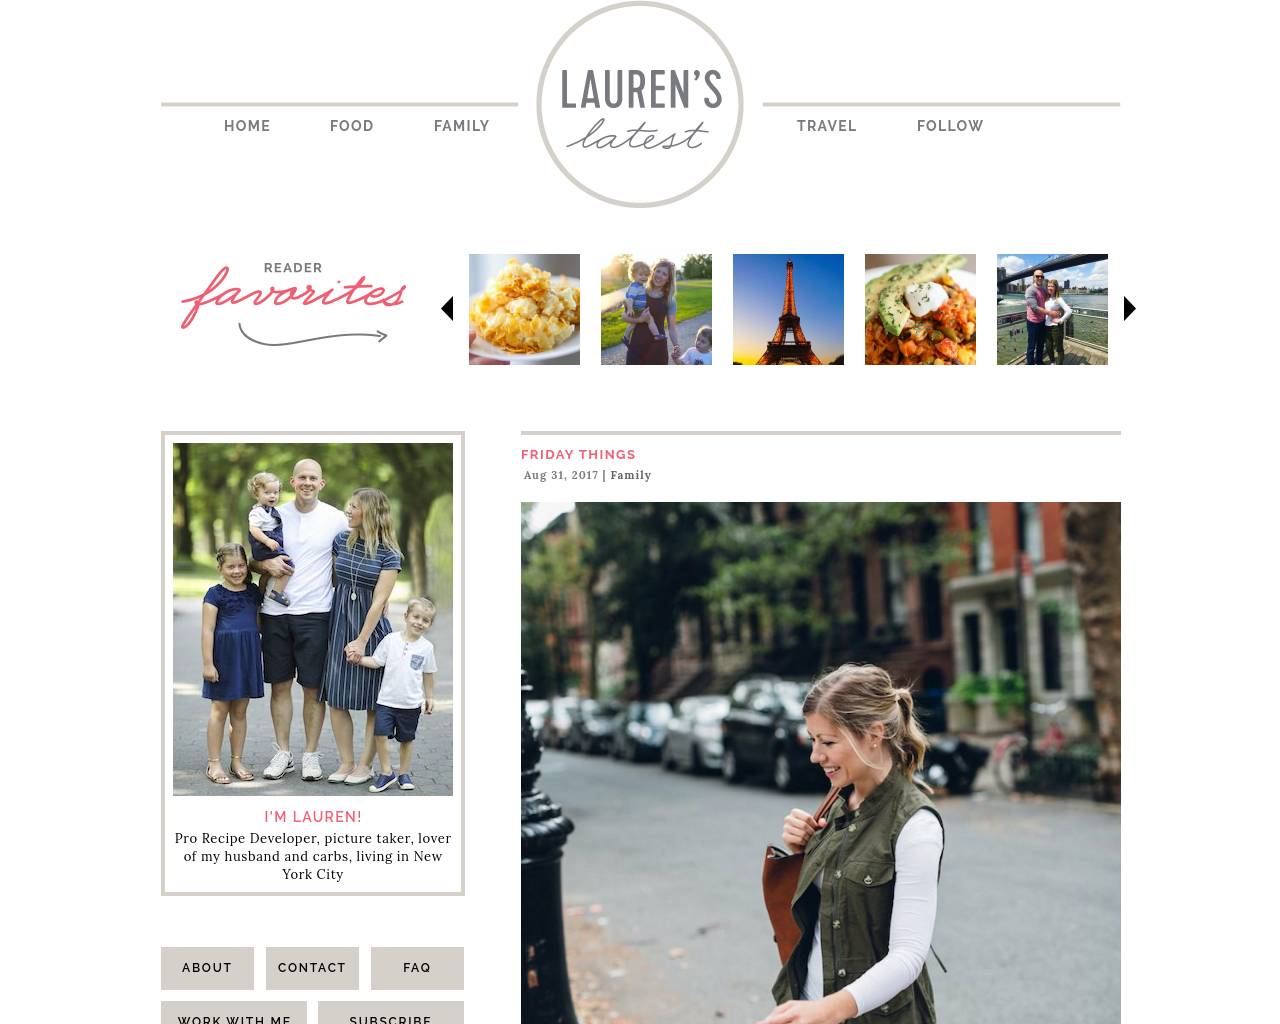 Lauren's-Latest-Advertising-Reviews-Pricing